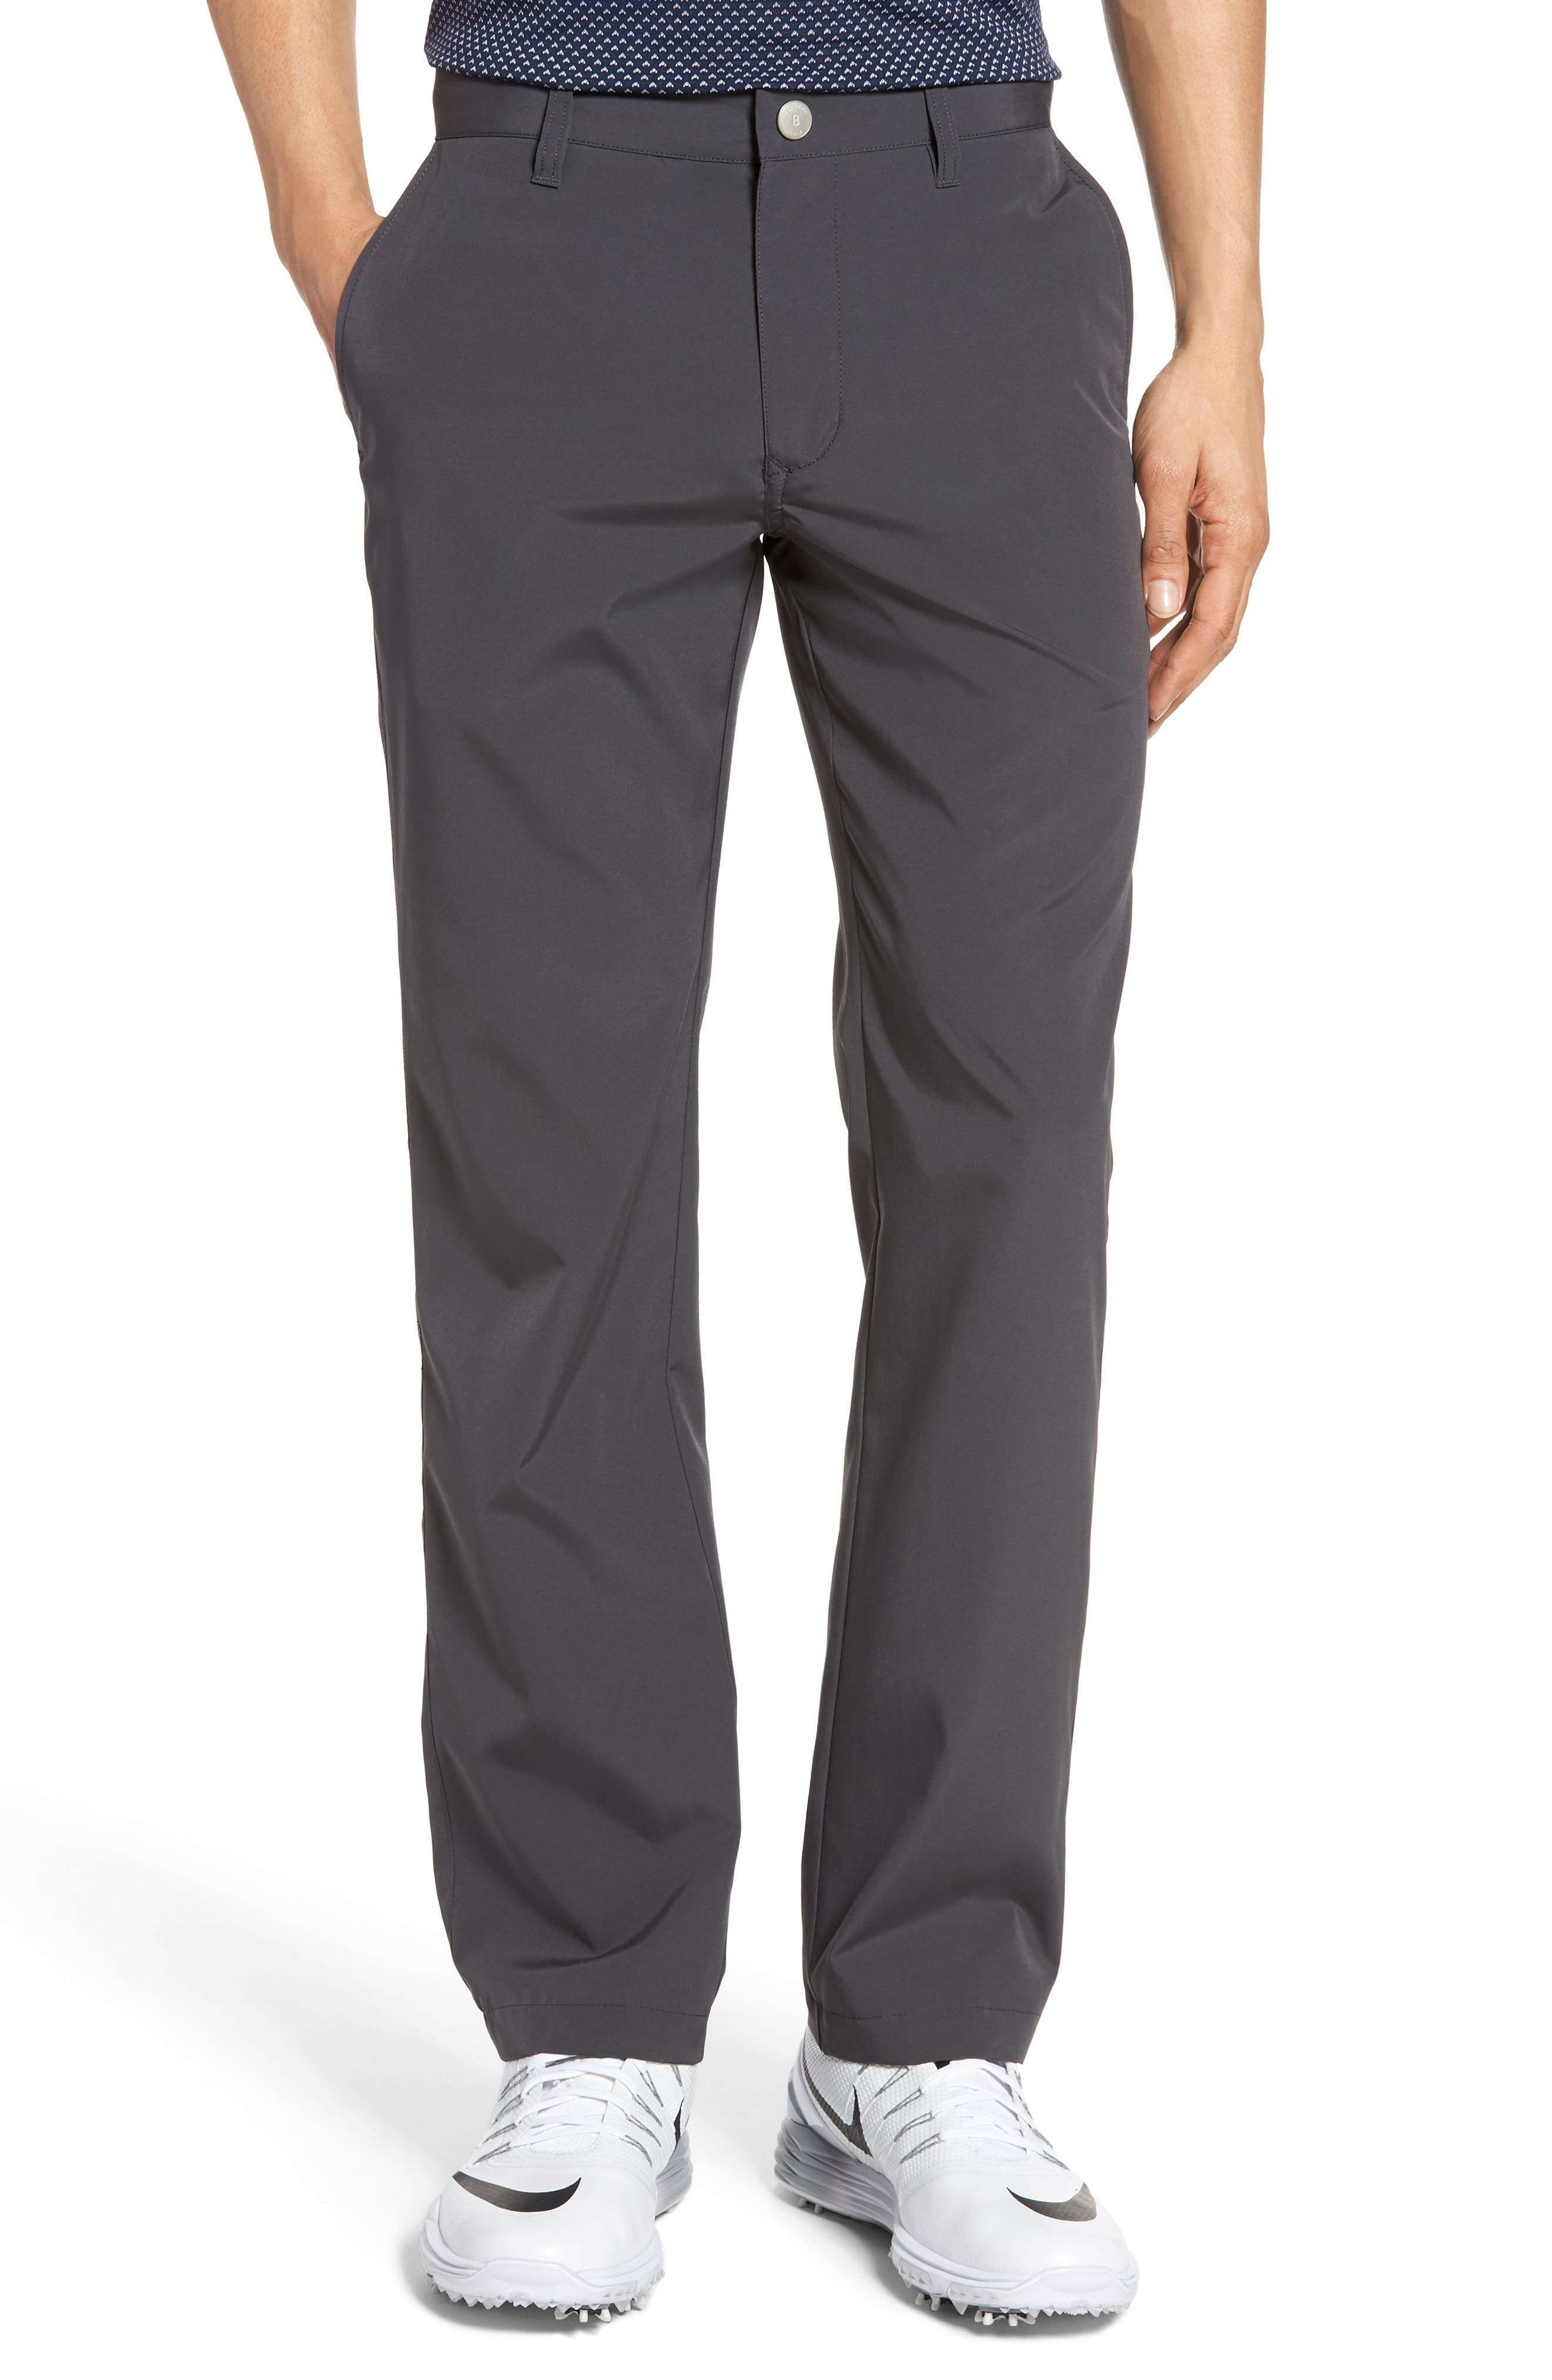 Lightweight Highland Slim Fit Golf Pants,                             Main thumbnail 1, color,                             Charcoal